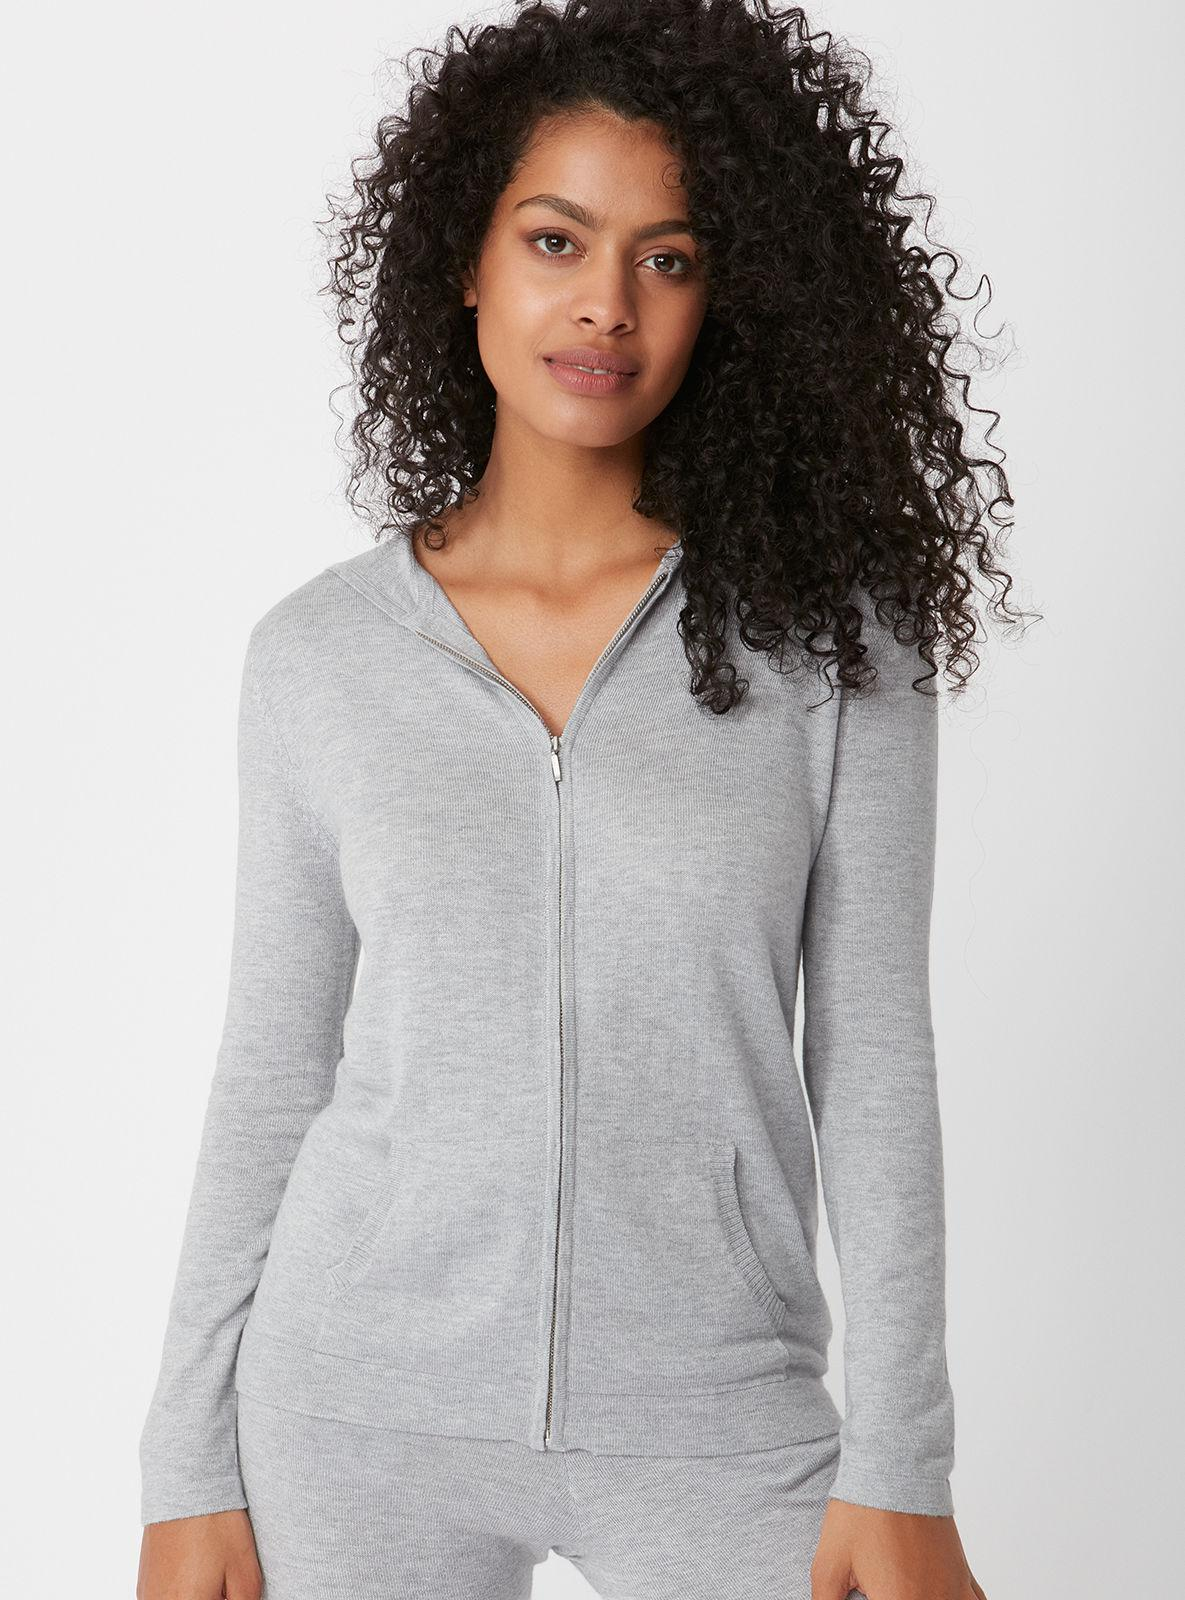 61fa17a1b2 Lyst - Boux Avenue Cashmere Blend Hoody in Gray